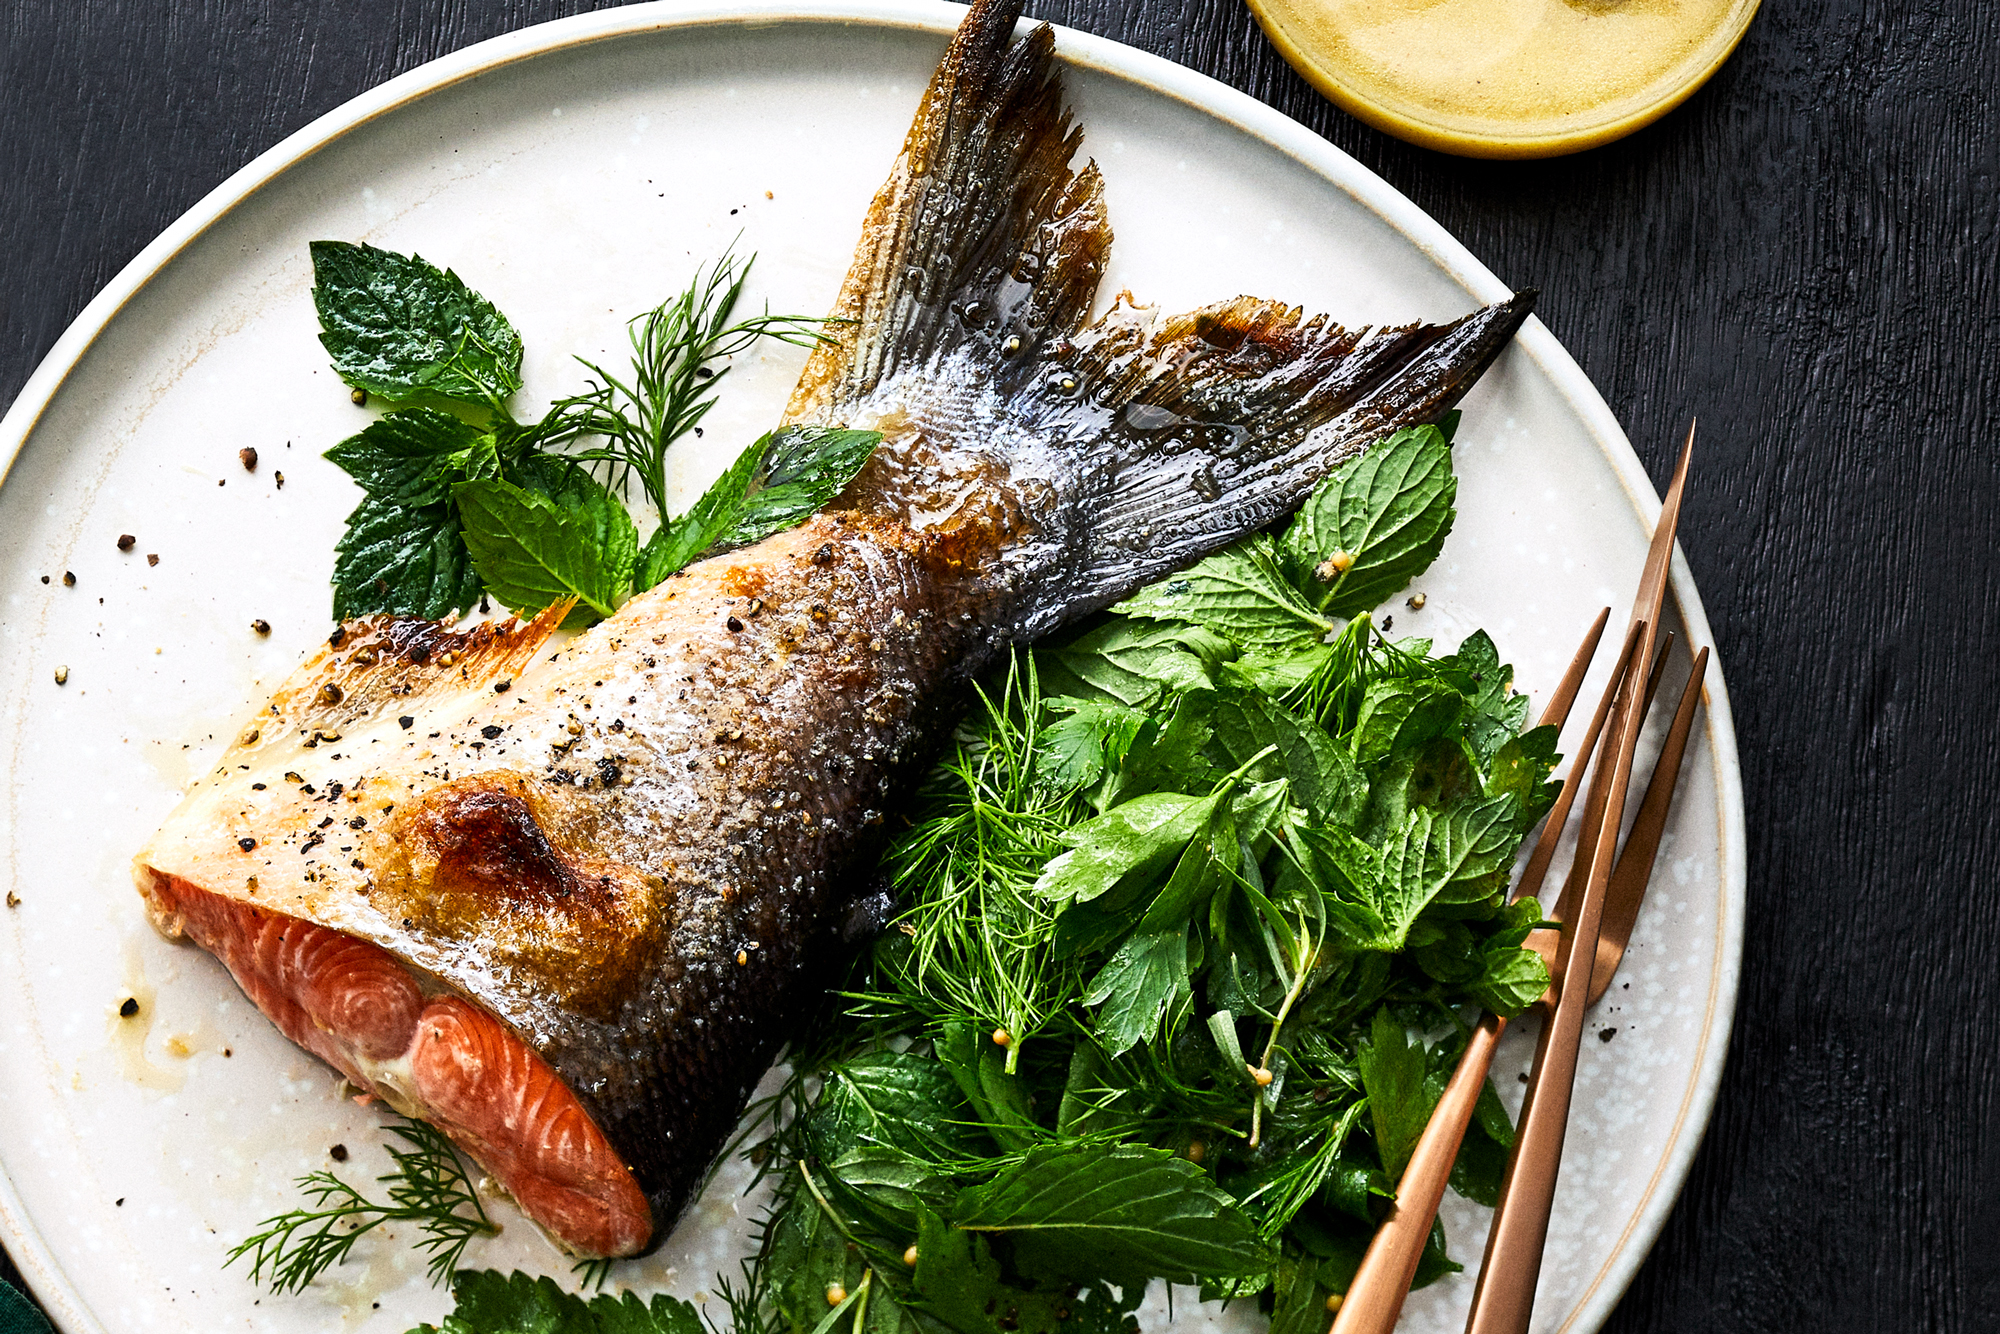 Slow Roasted Salmon Tails with Herb-Mustard Seed Salad Recipe